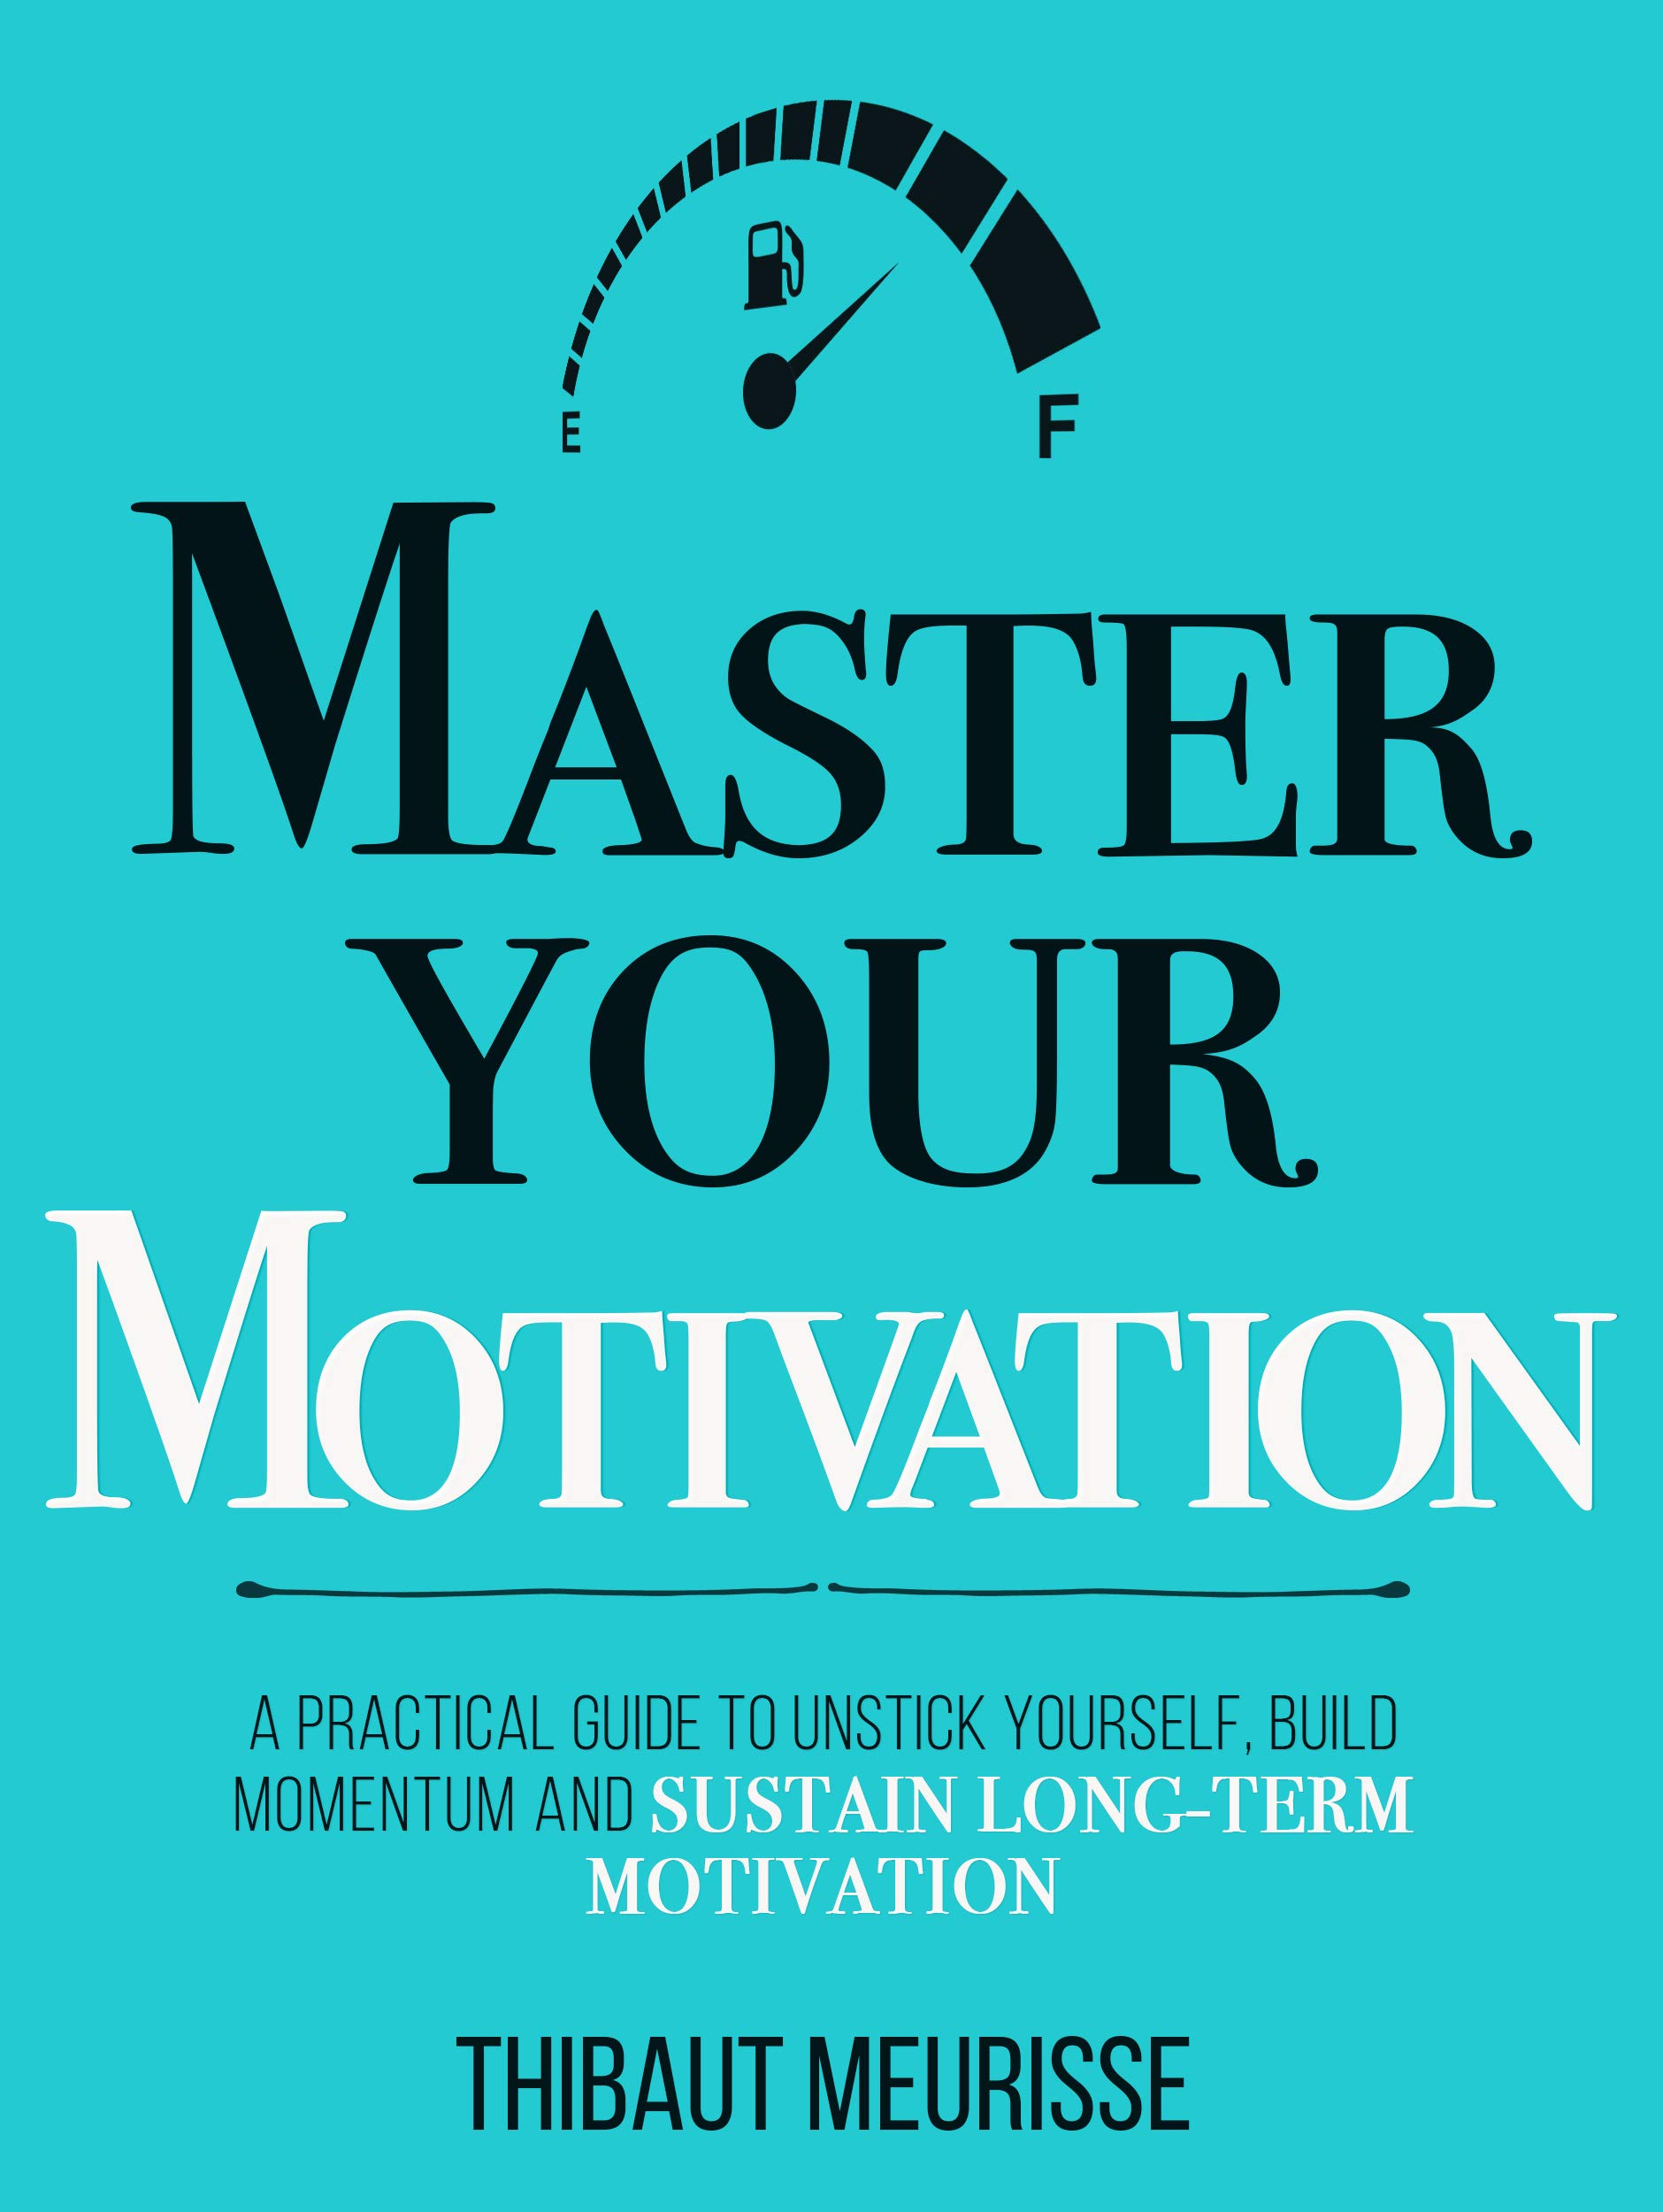 Master Your Motivation  A Practical Guide To Unstick Yourself Build Momentum And Sustain Long Term Motivation  Mastery Series Book 2   English Edition